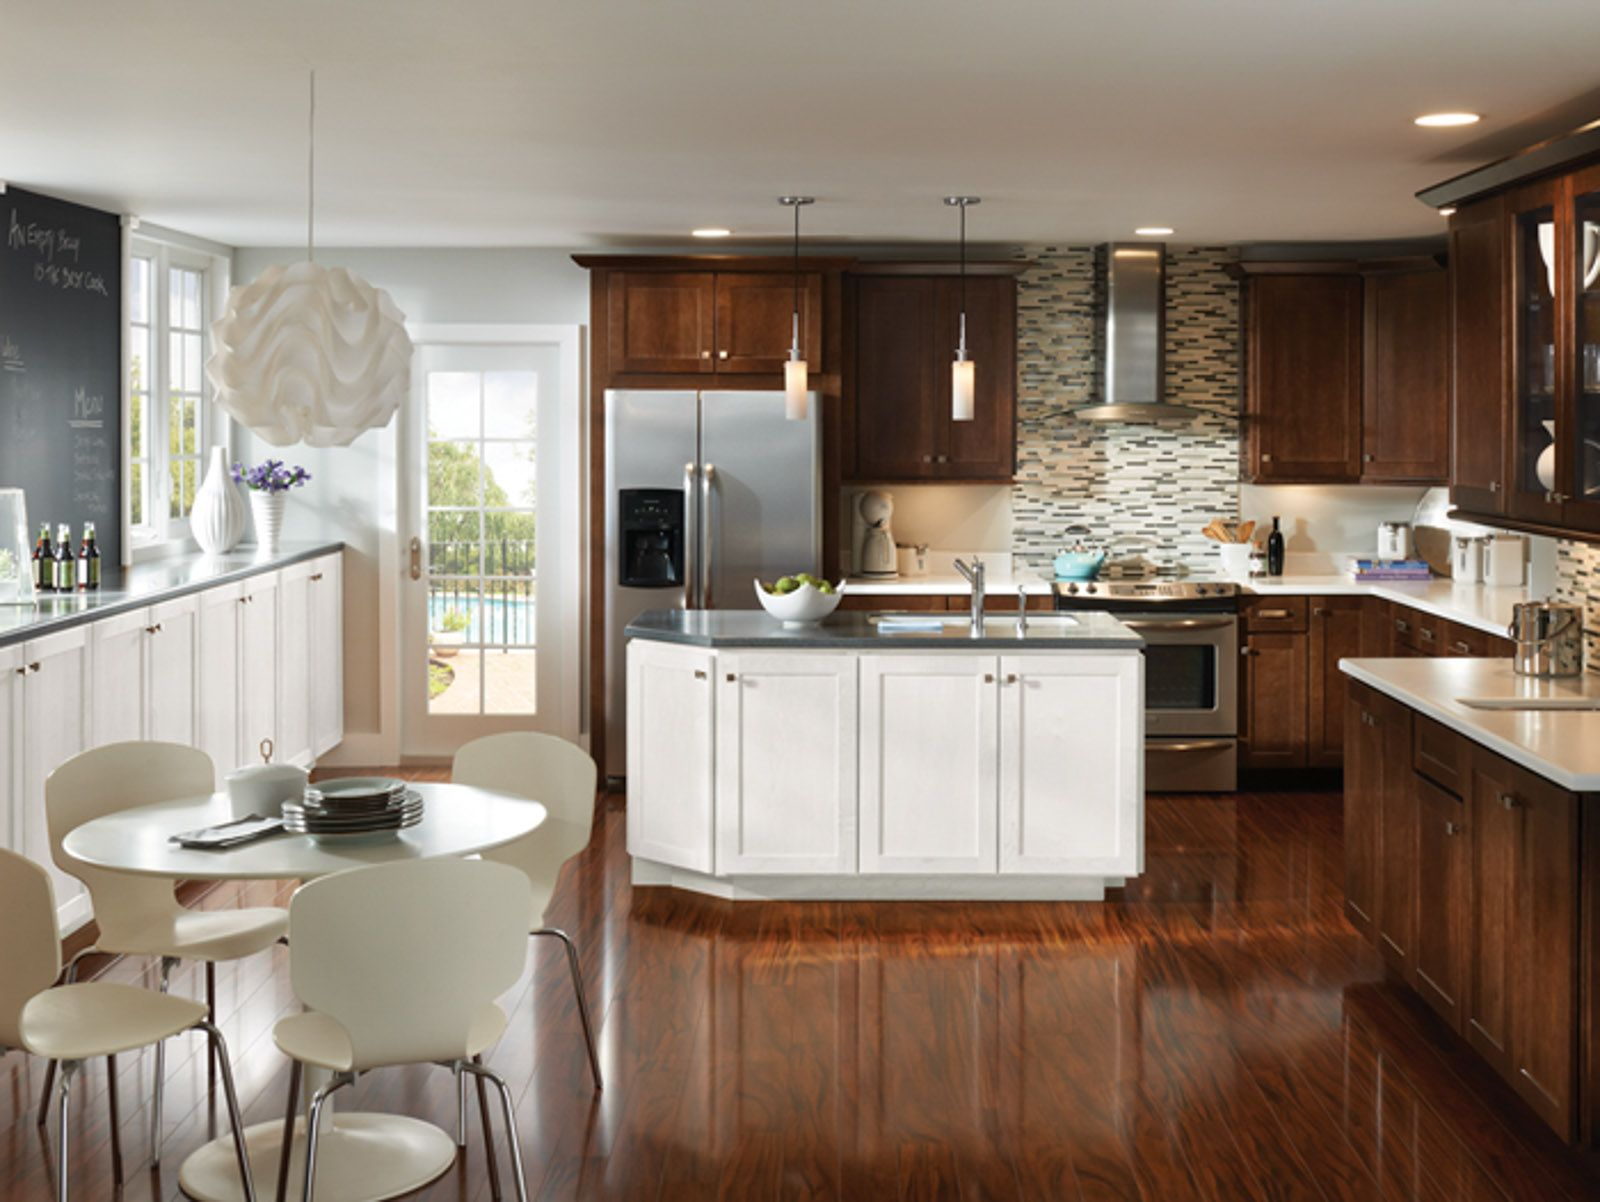 Echelon Cabinetry S Trevino Slab Is Budget Conscious Without Sacrificing Style Check Out Our B Kitchen Inspirations Maple Kitchen Cabinets Kitchen Cabinetry